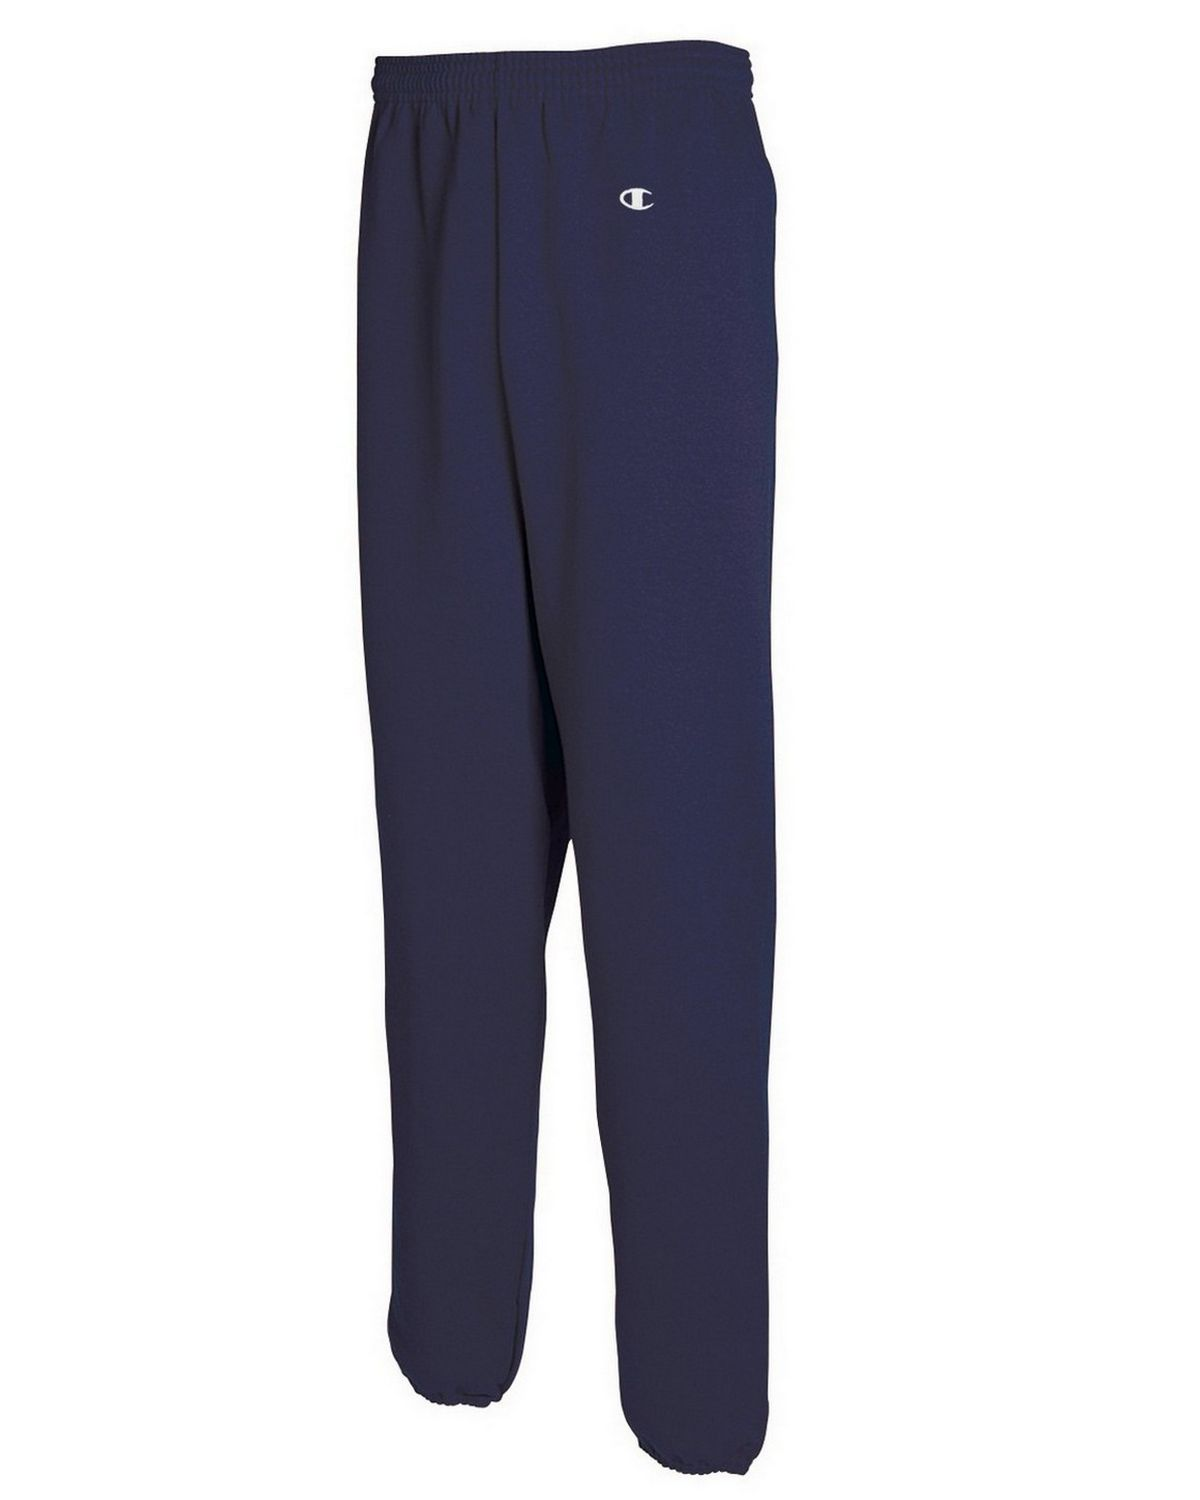 Champion P900 EcoSmart Sweatpants - Navy - XL P900